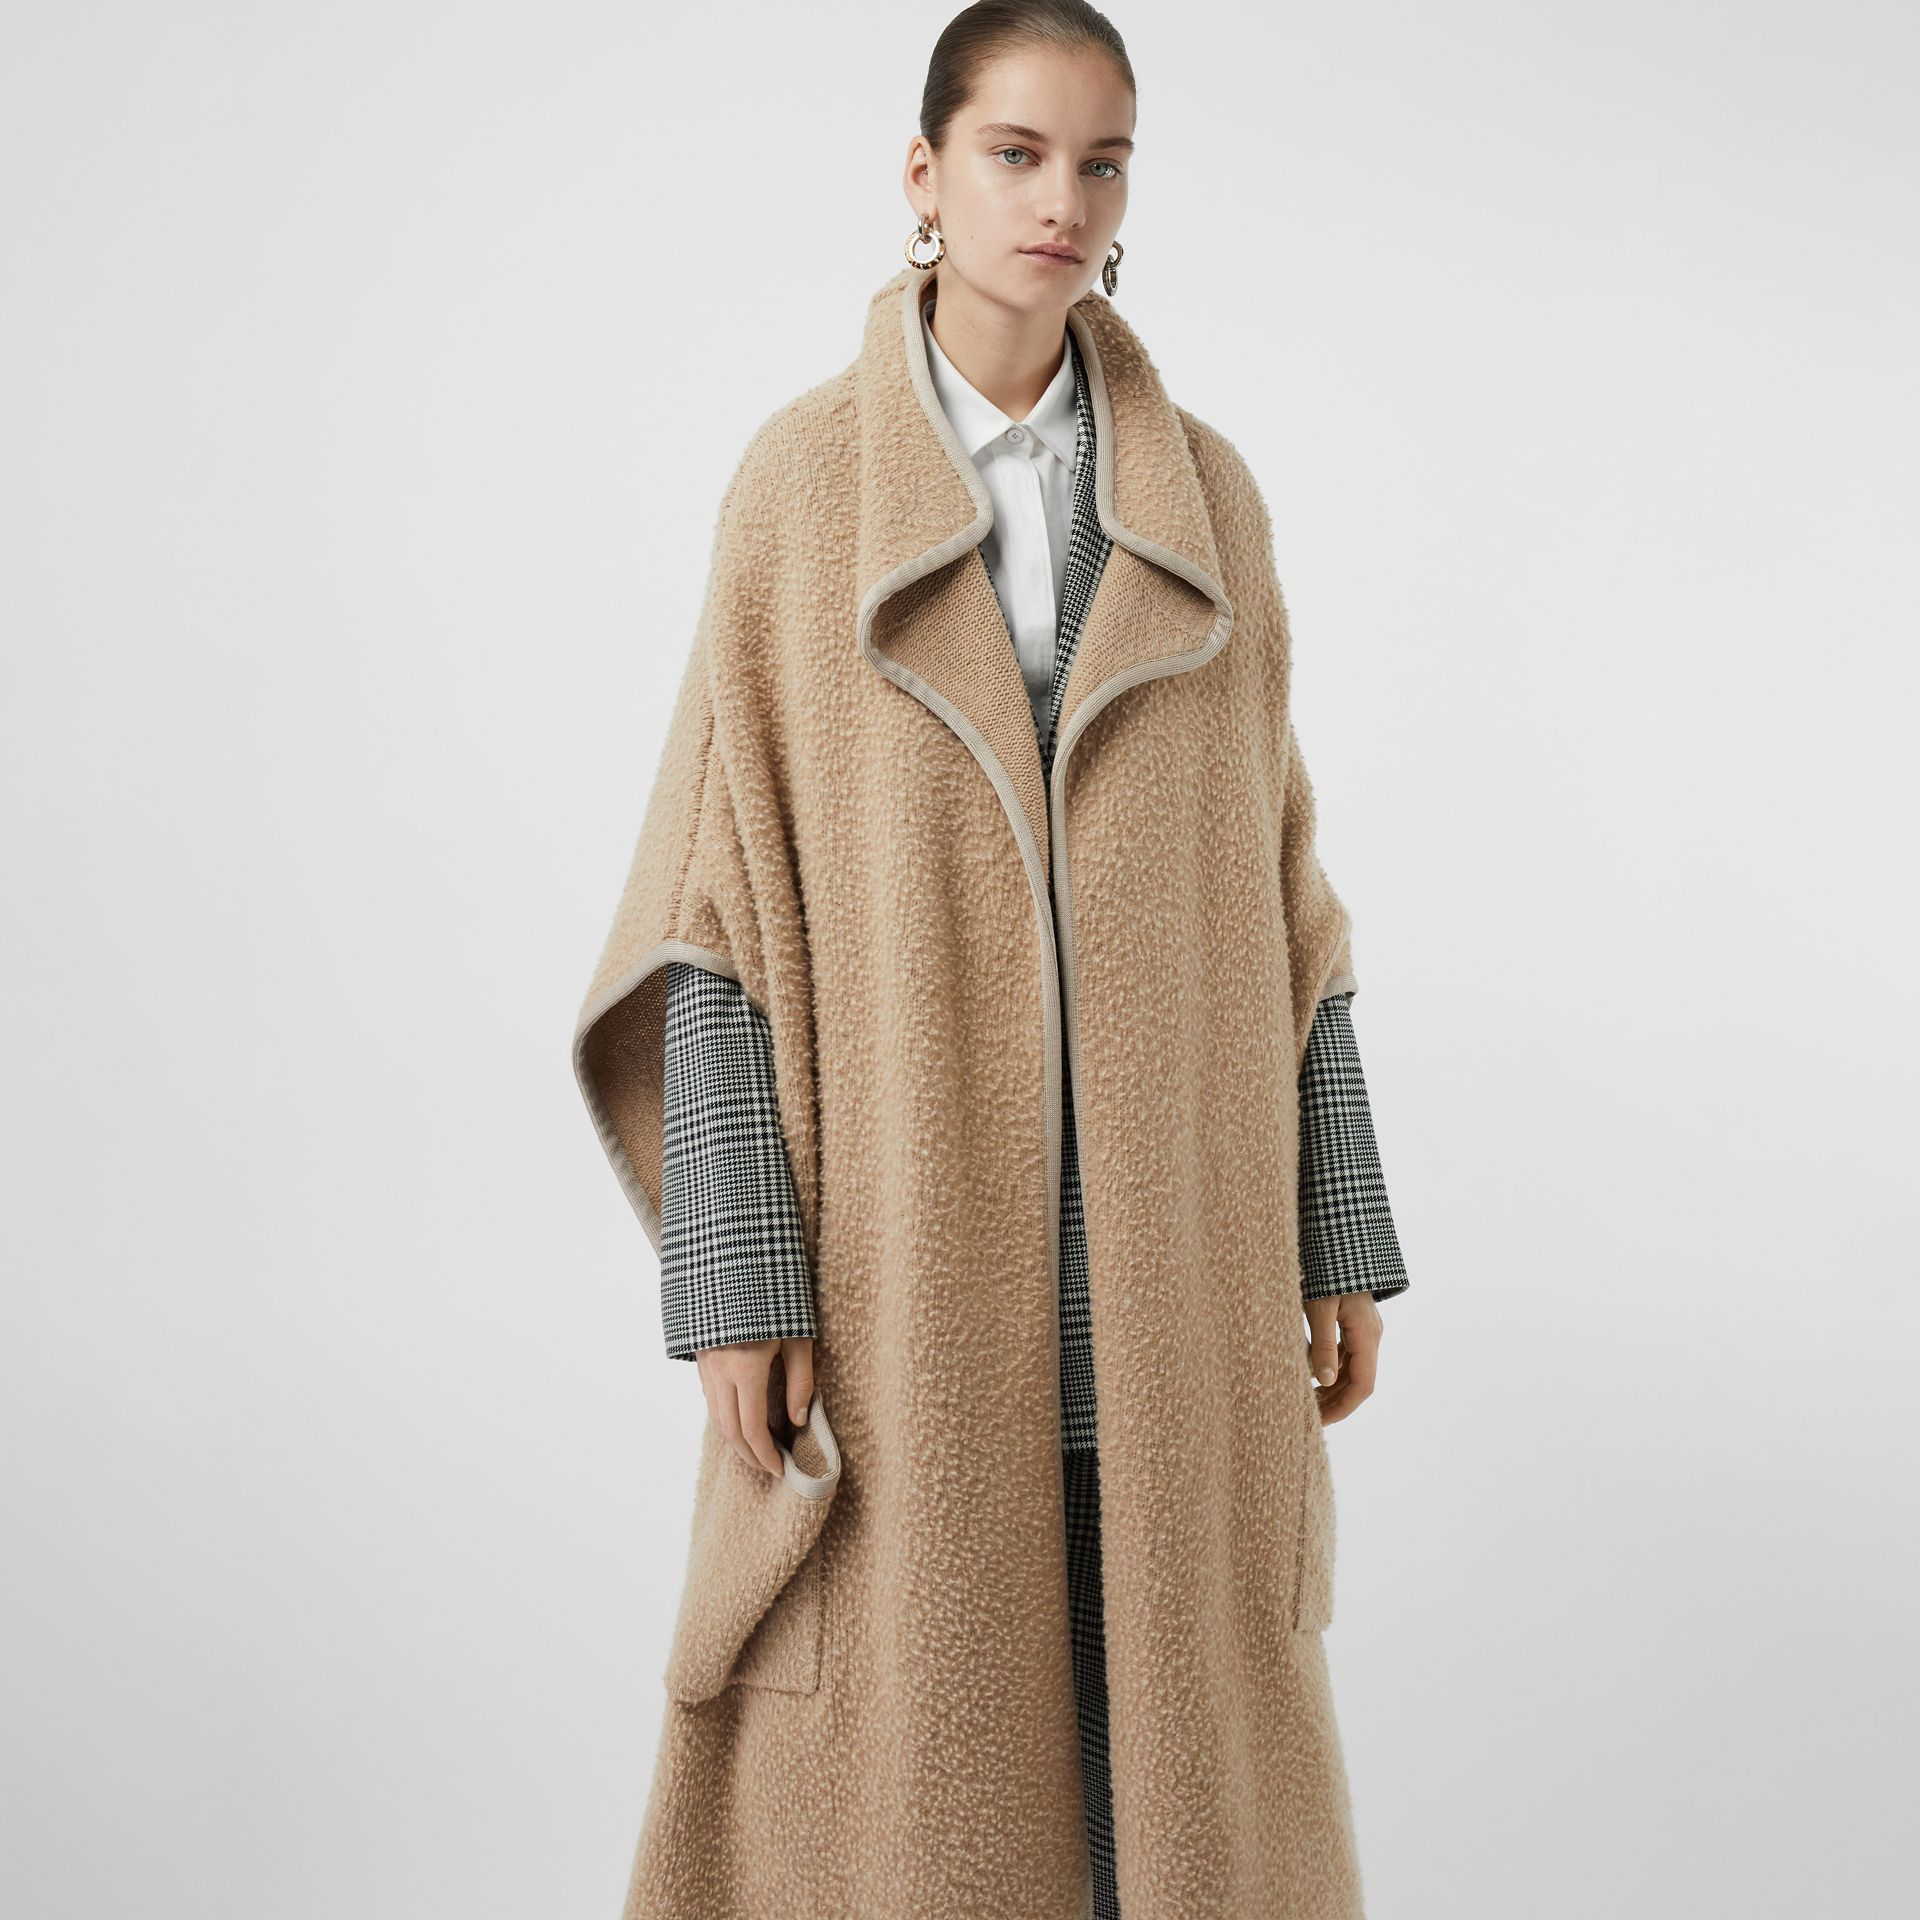 Wool Fleece Cape in Sand - Women | Burberry - gallery image 4